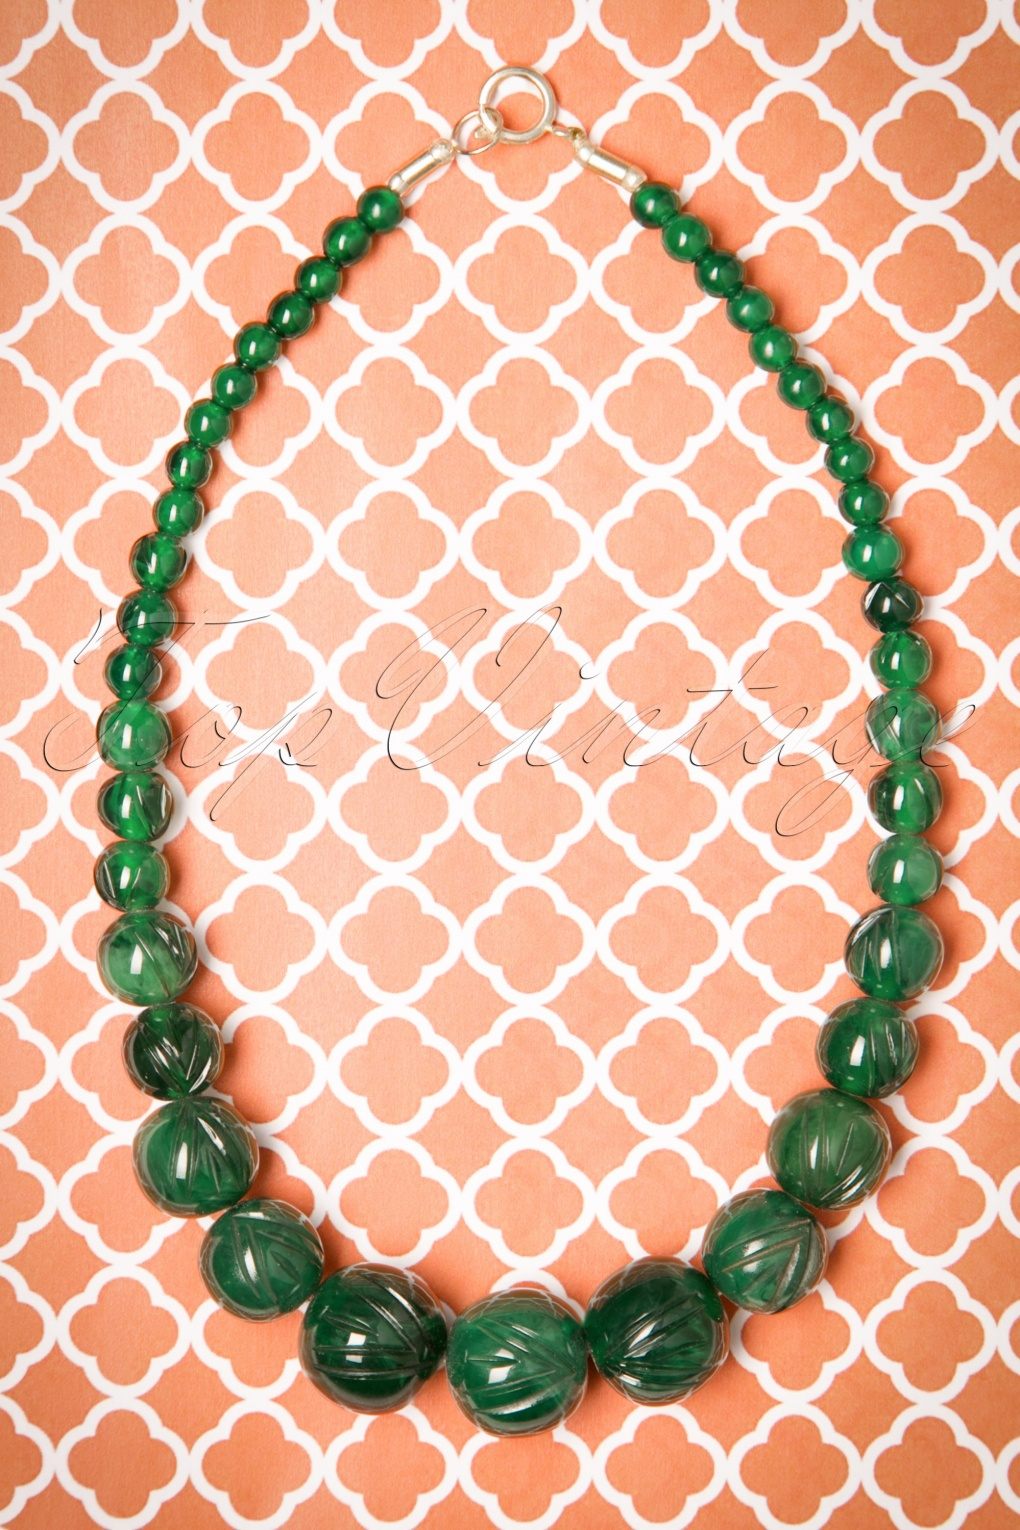 1930s Costume Jewelry TopVintage Exclusive  20s Luna Carved Pearl Necklace in Deep Green £11.64 AT vintagedancer.com